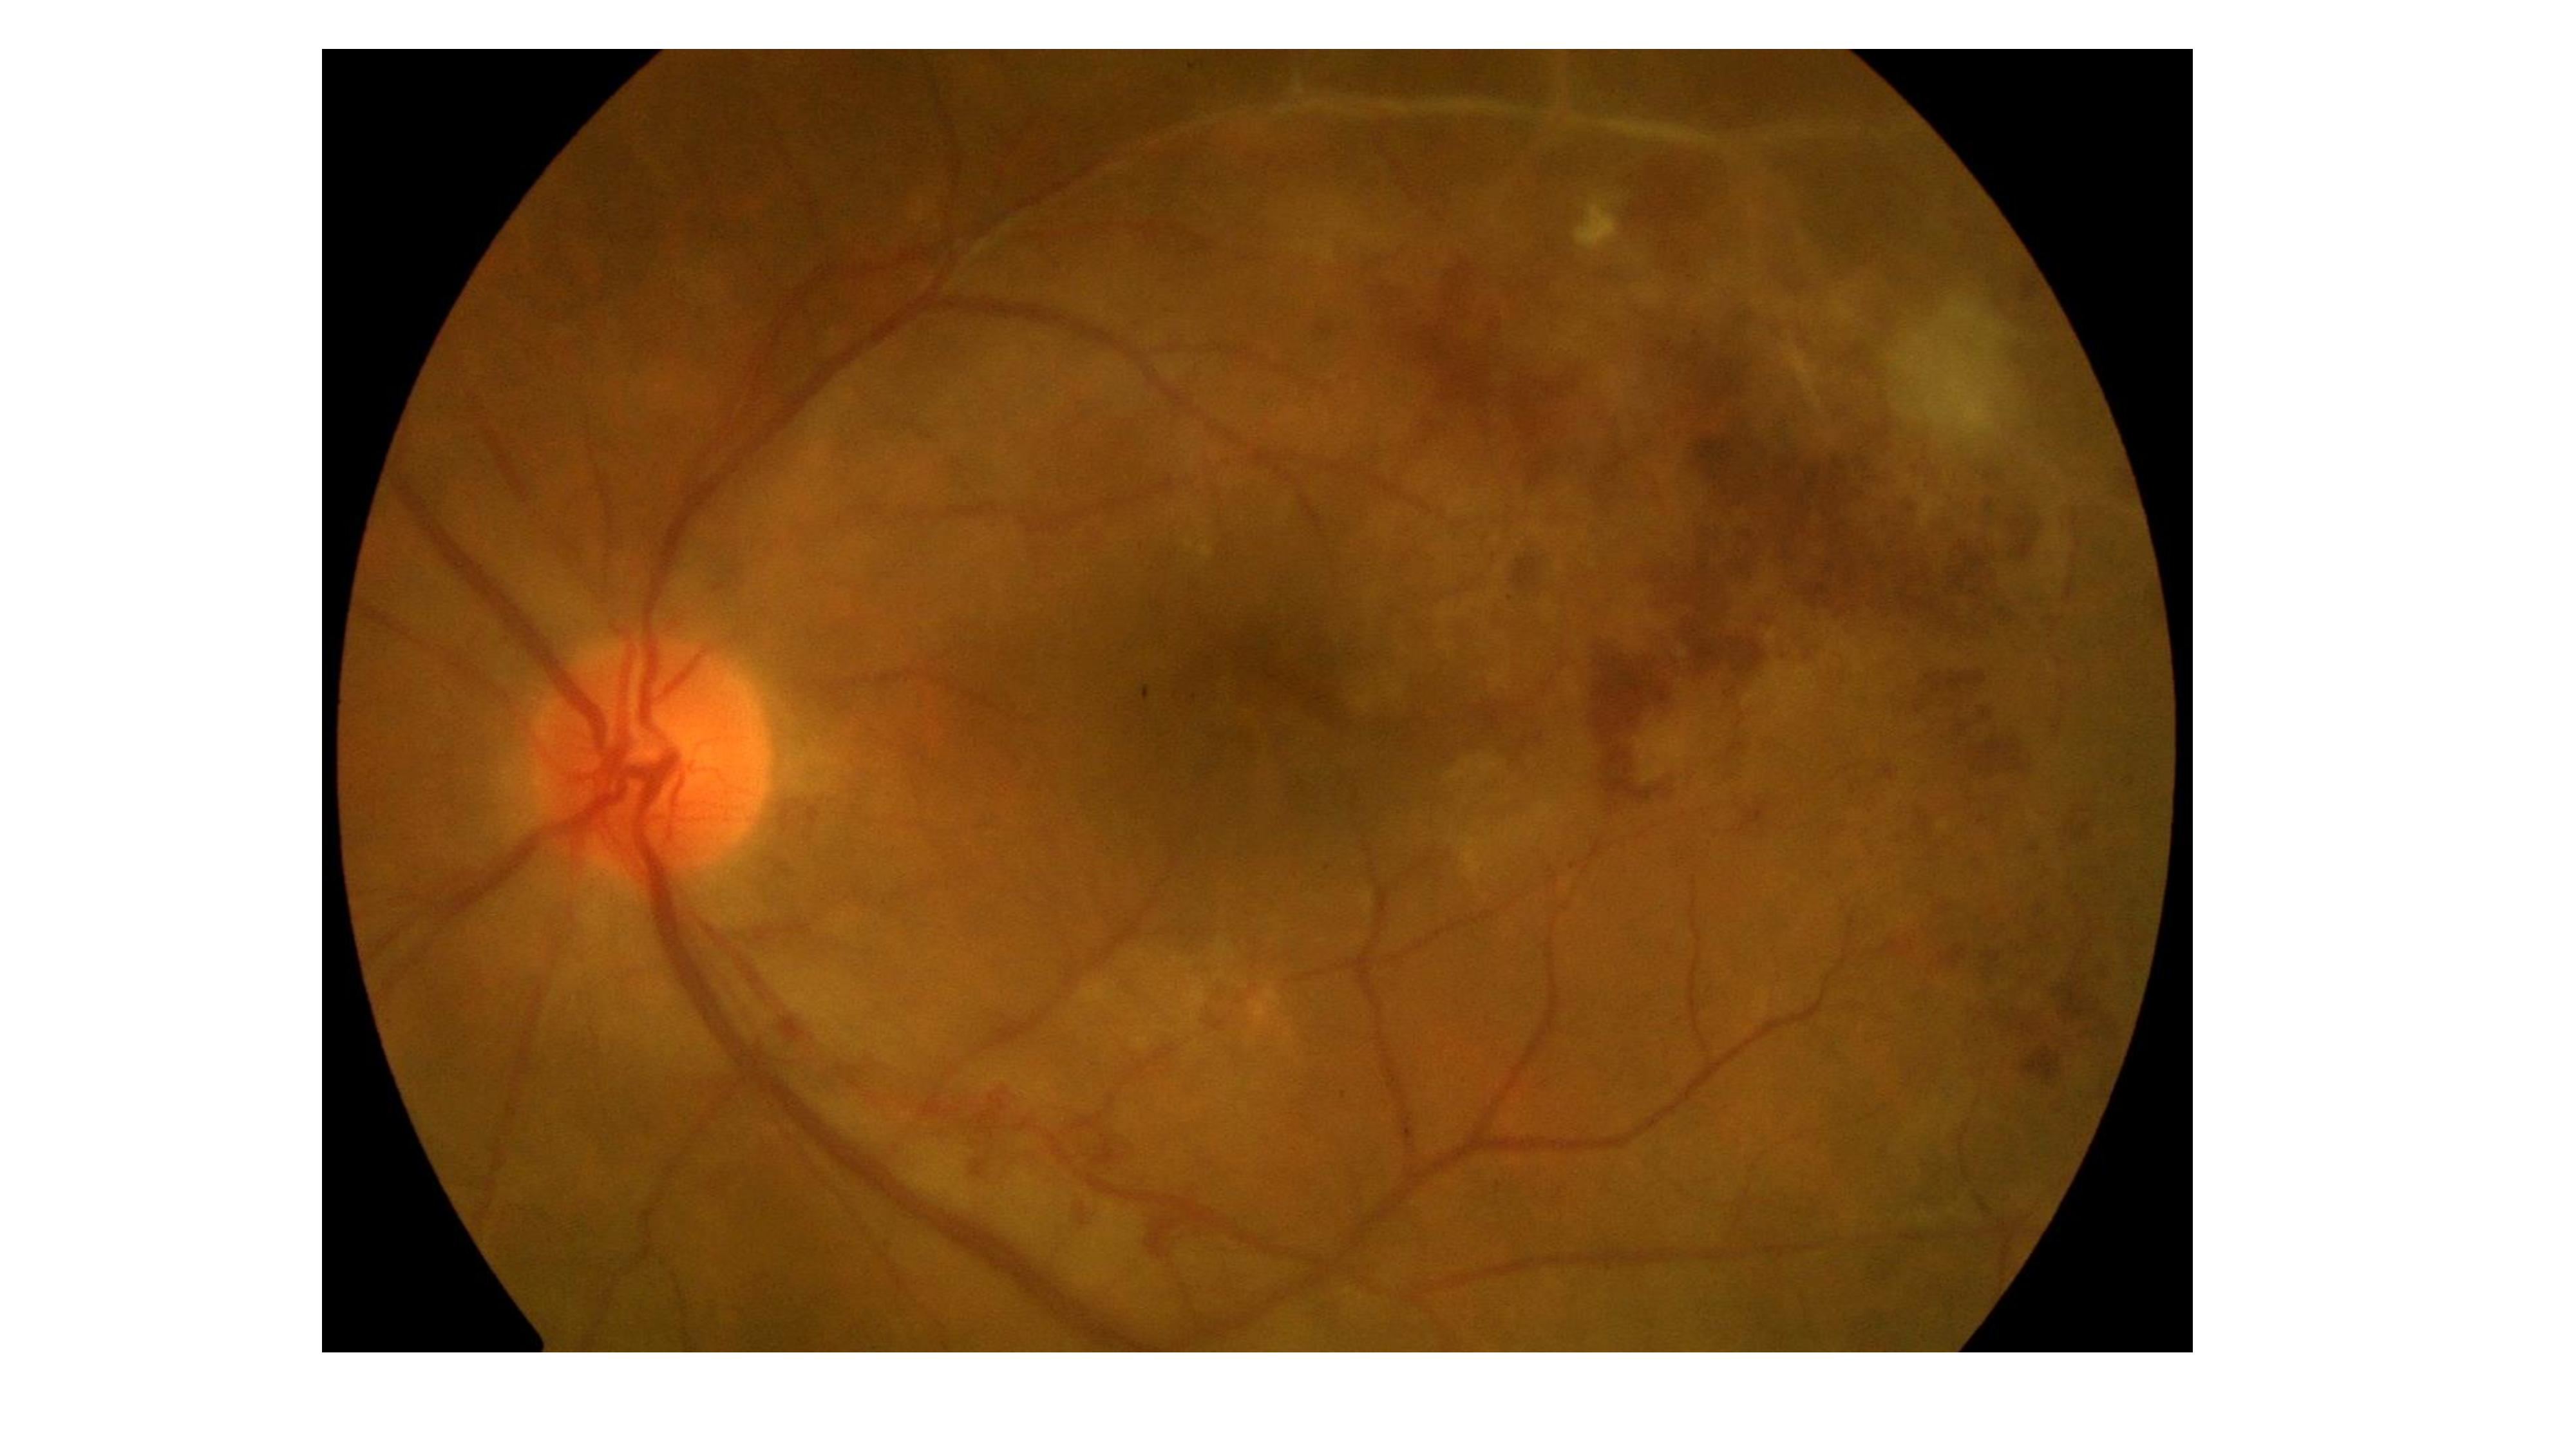 TB delayed hypersensitivity uveitis (Eales' disease) presenting with hemorrhagic ischemic vascular occlusion. Note the retinal hemorrhages and the vascular obliteration and sheathing temporal to the macula.